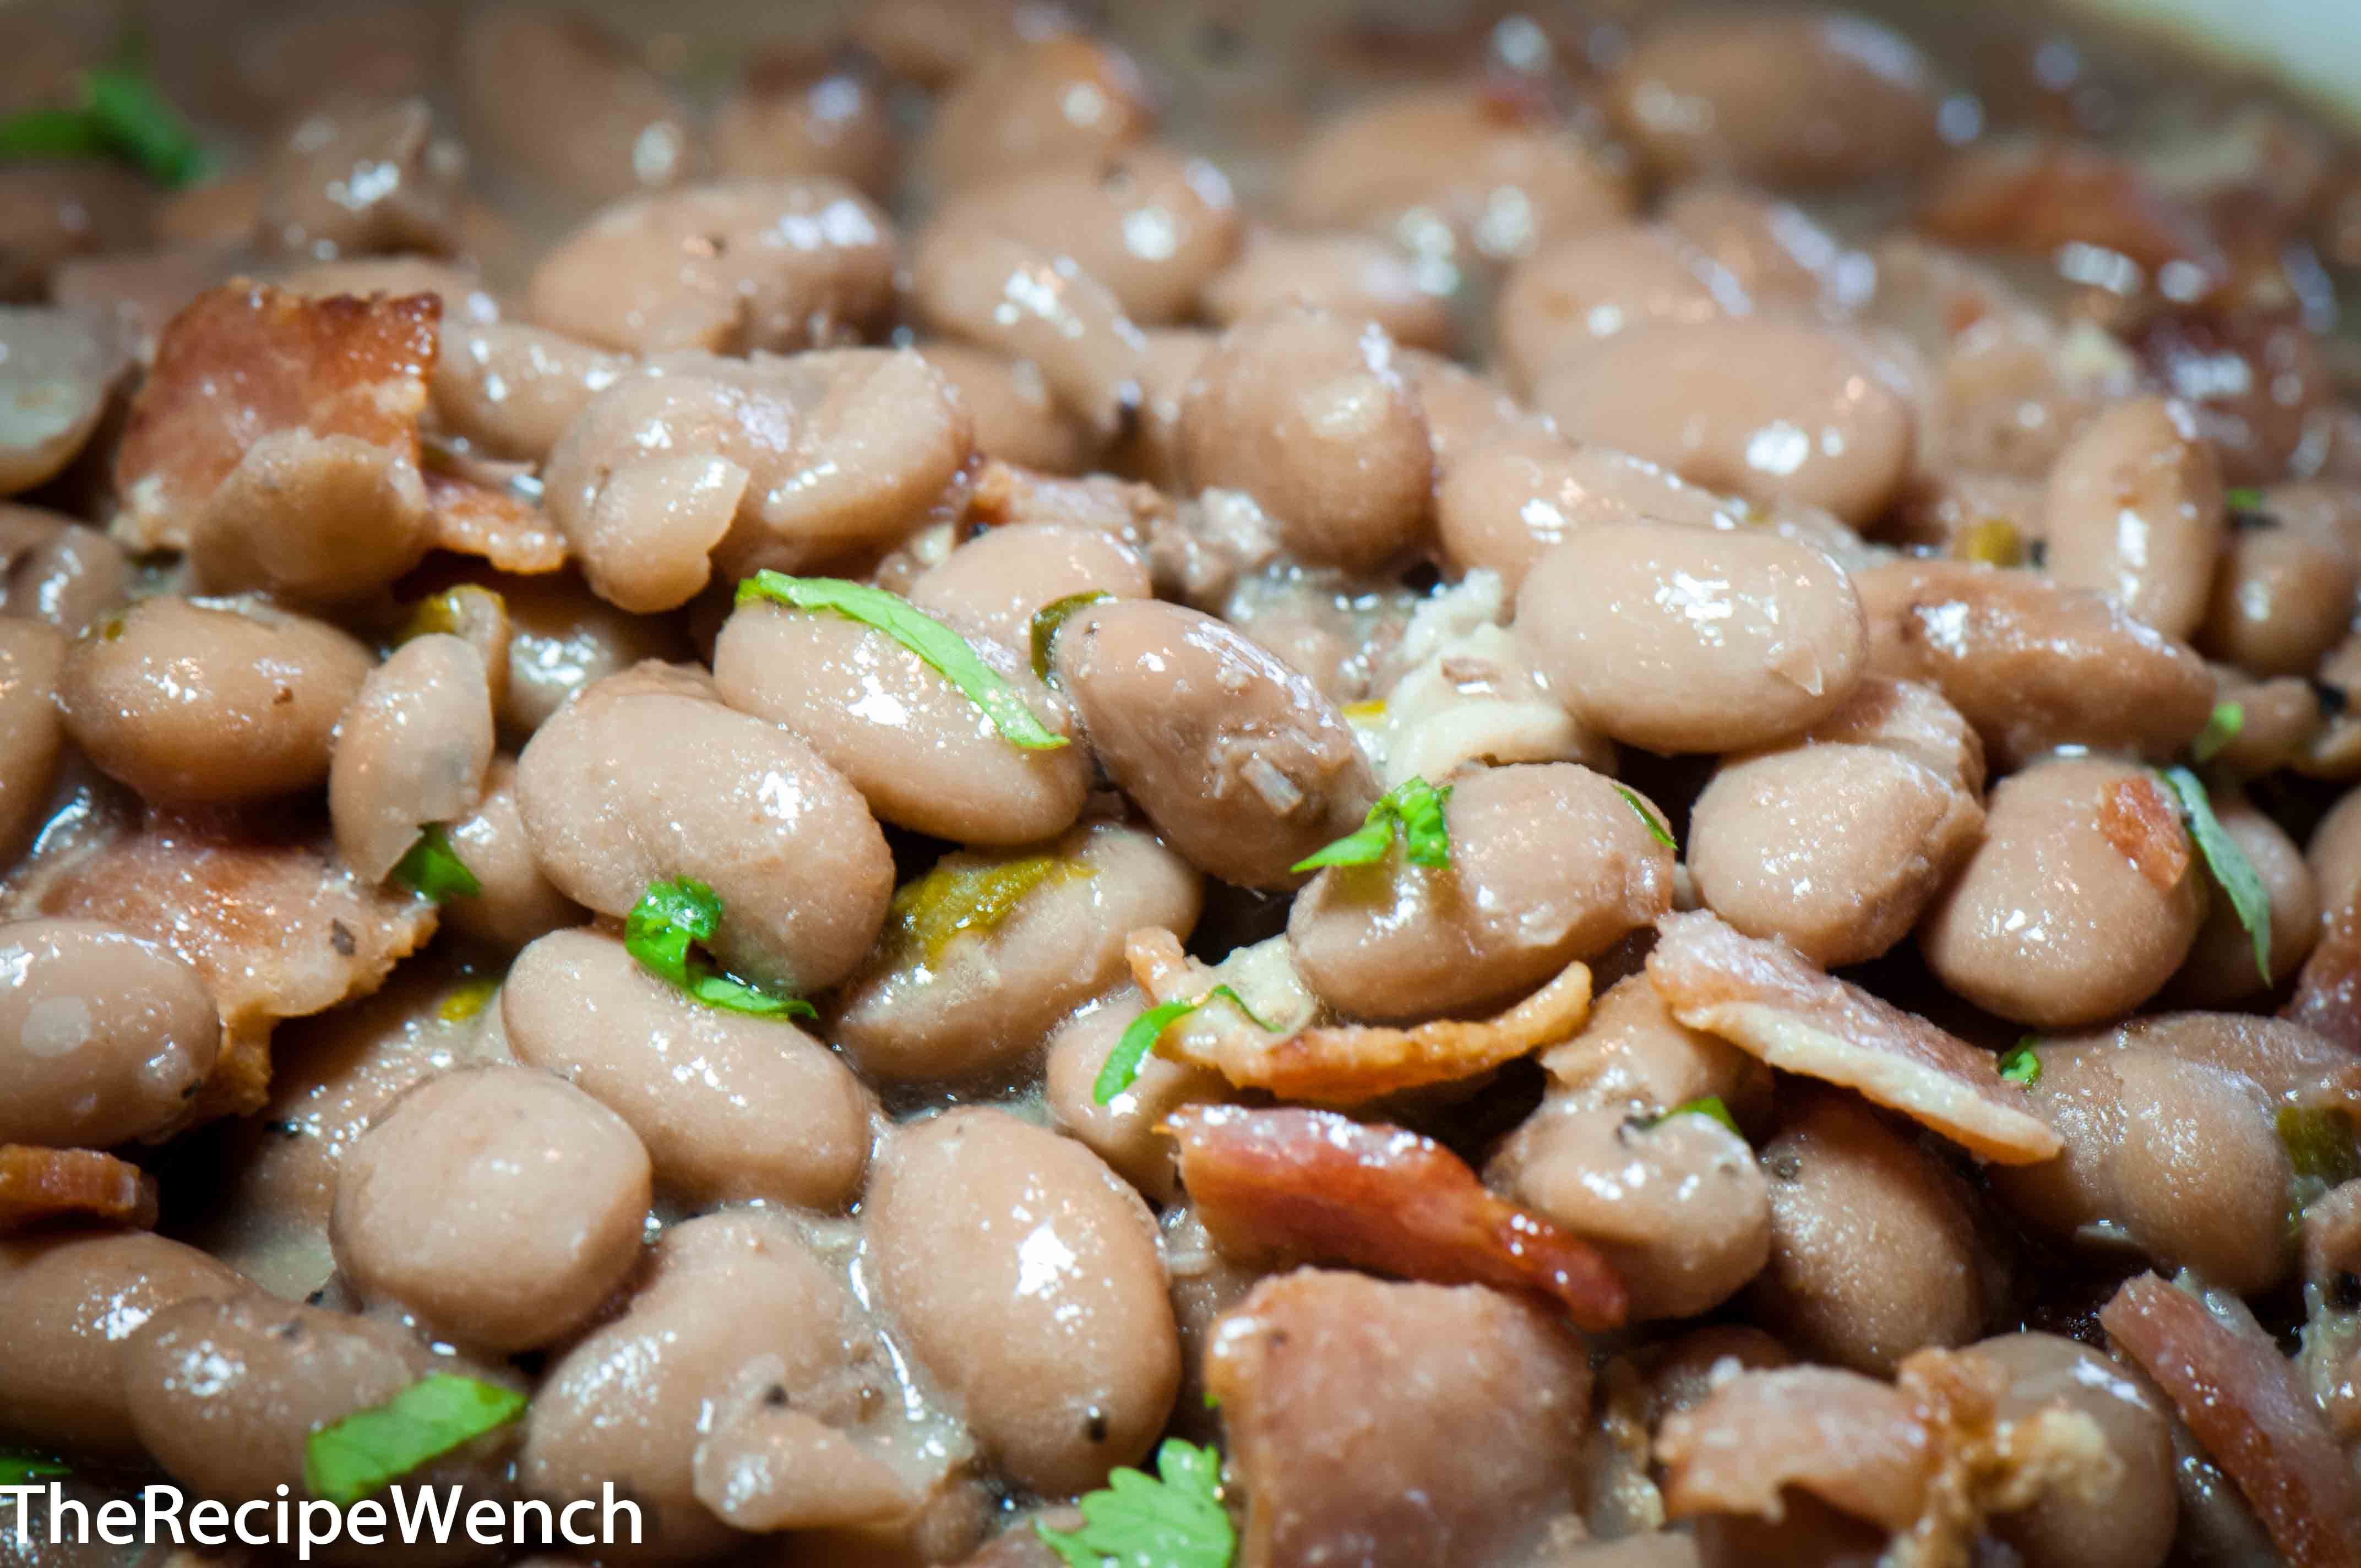 Mexican Style Beans - Versatile and Tasty